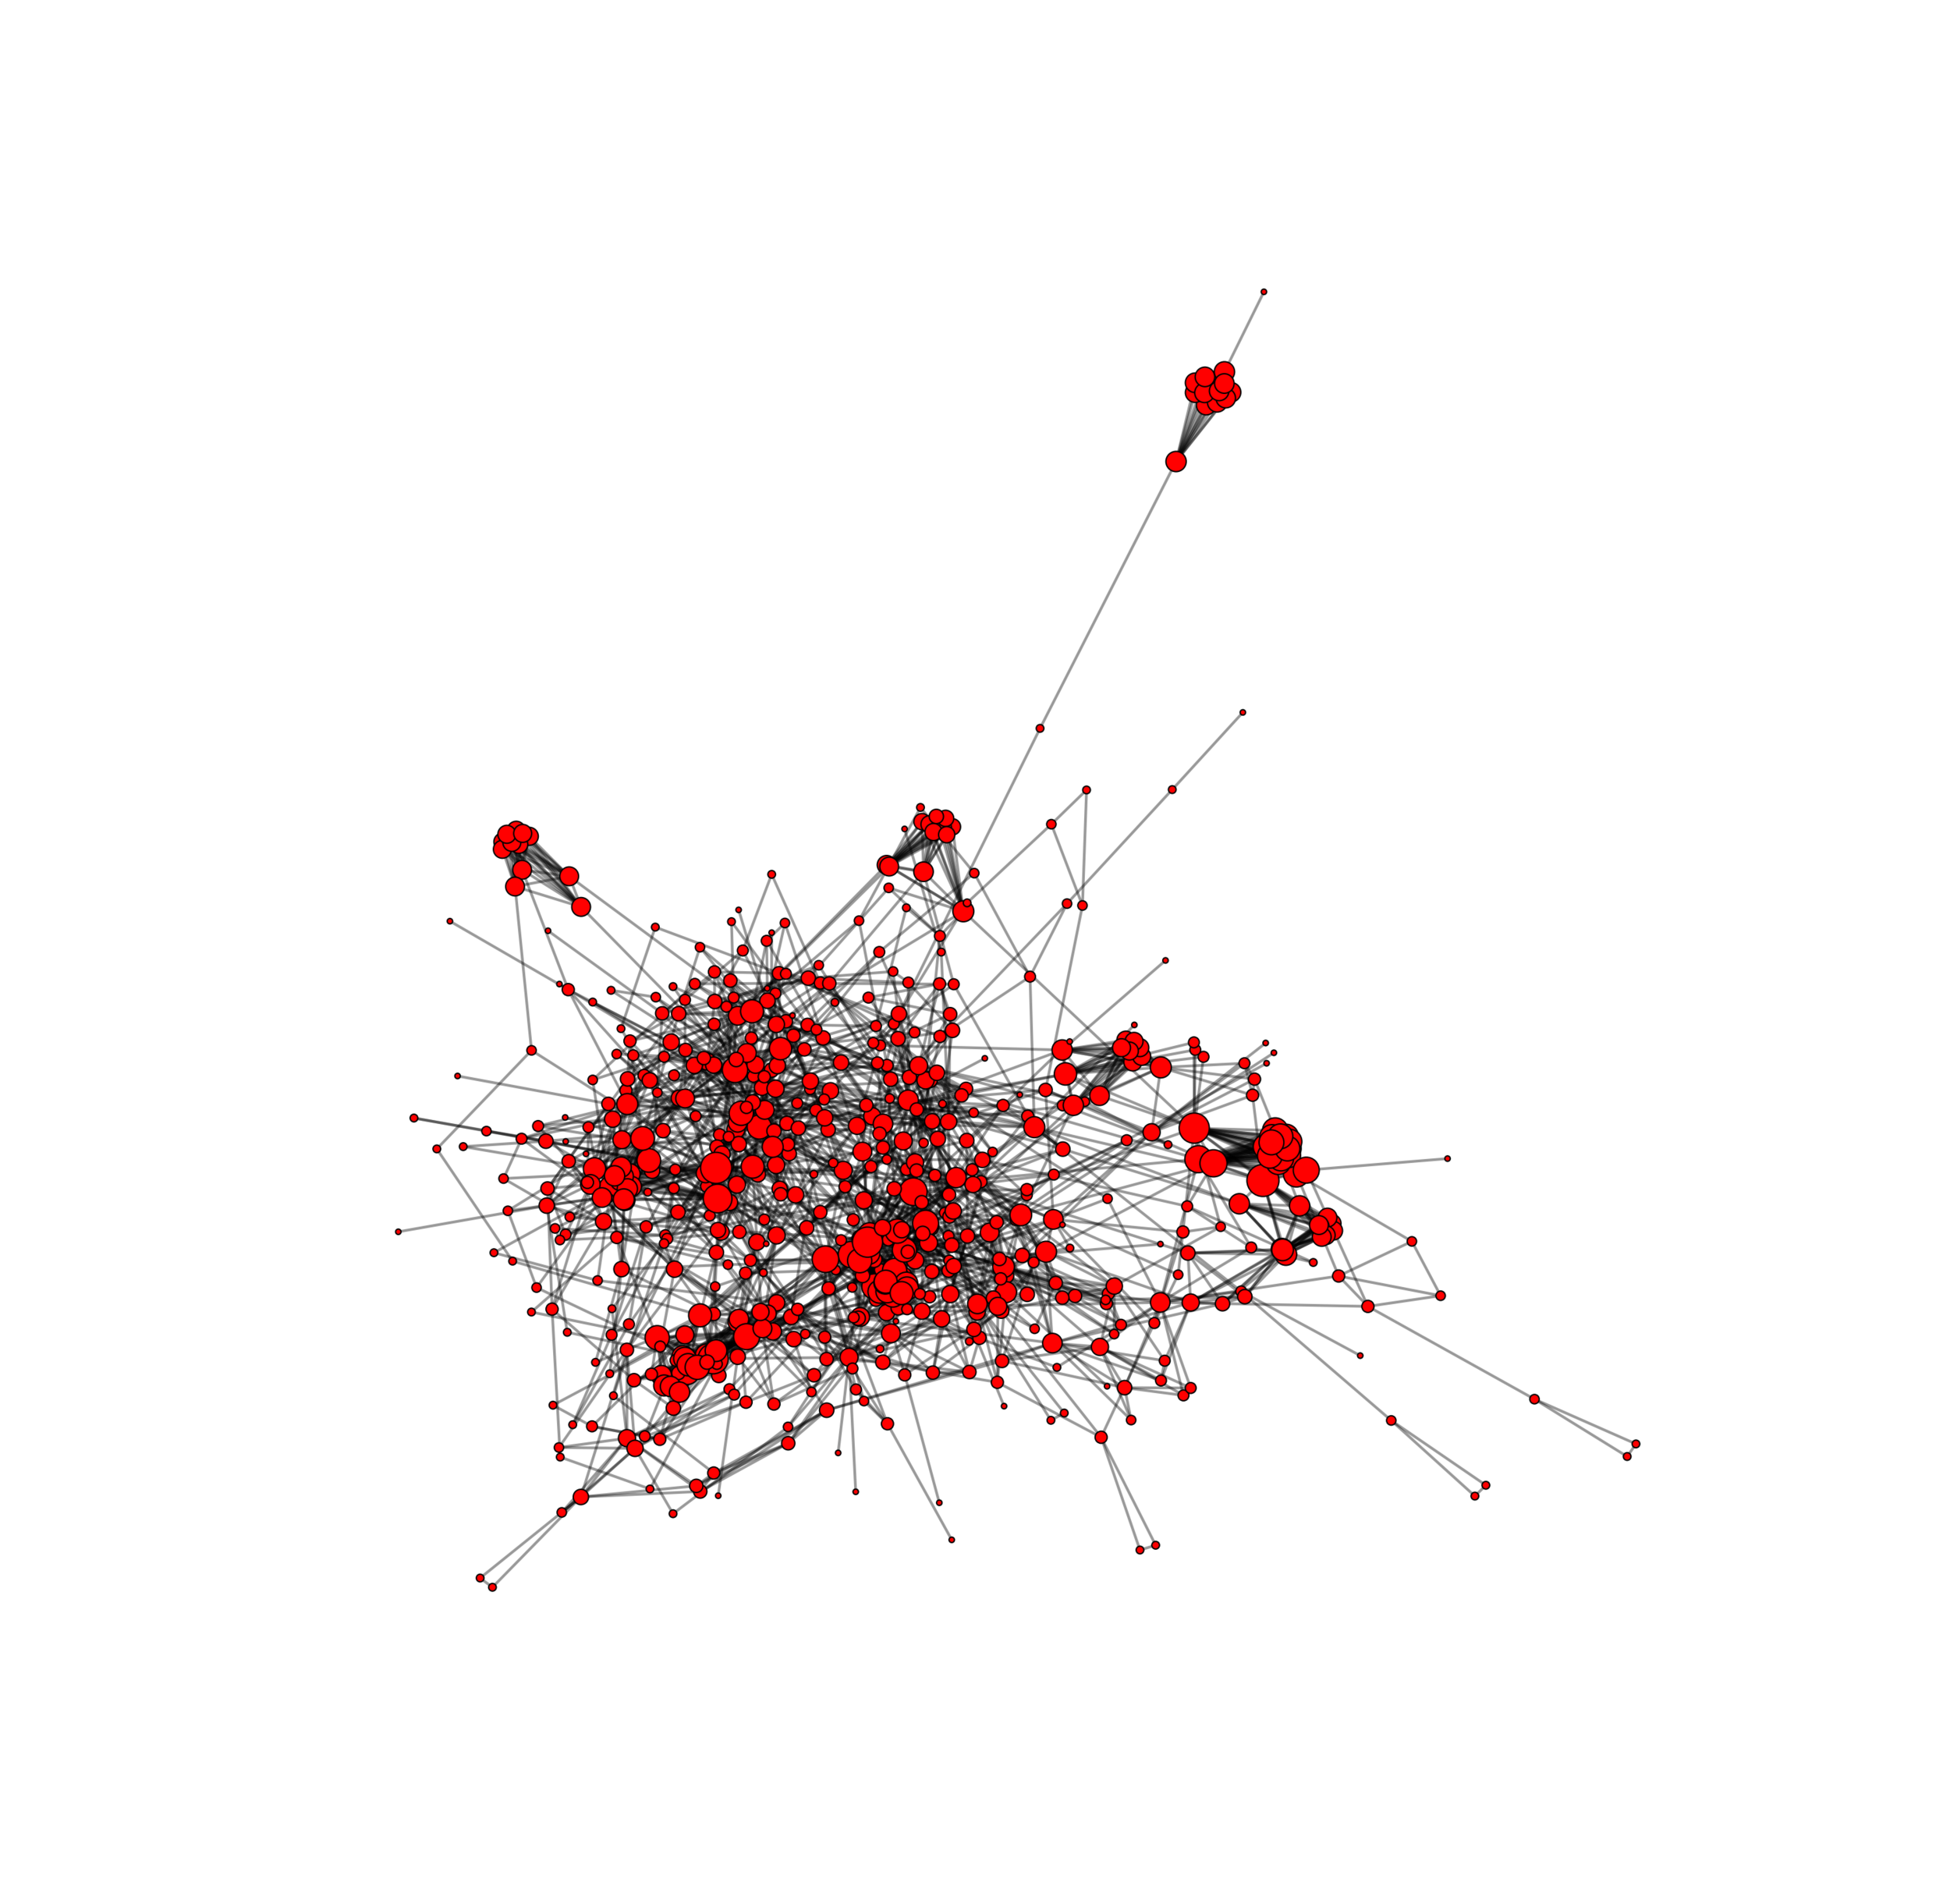 COLLAB: find connections in the collaboration networl. Image: a visualization of the collaboration graph implied by co-authorship in  Geophysics .